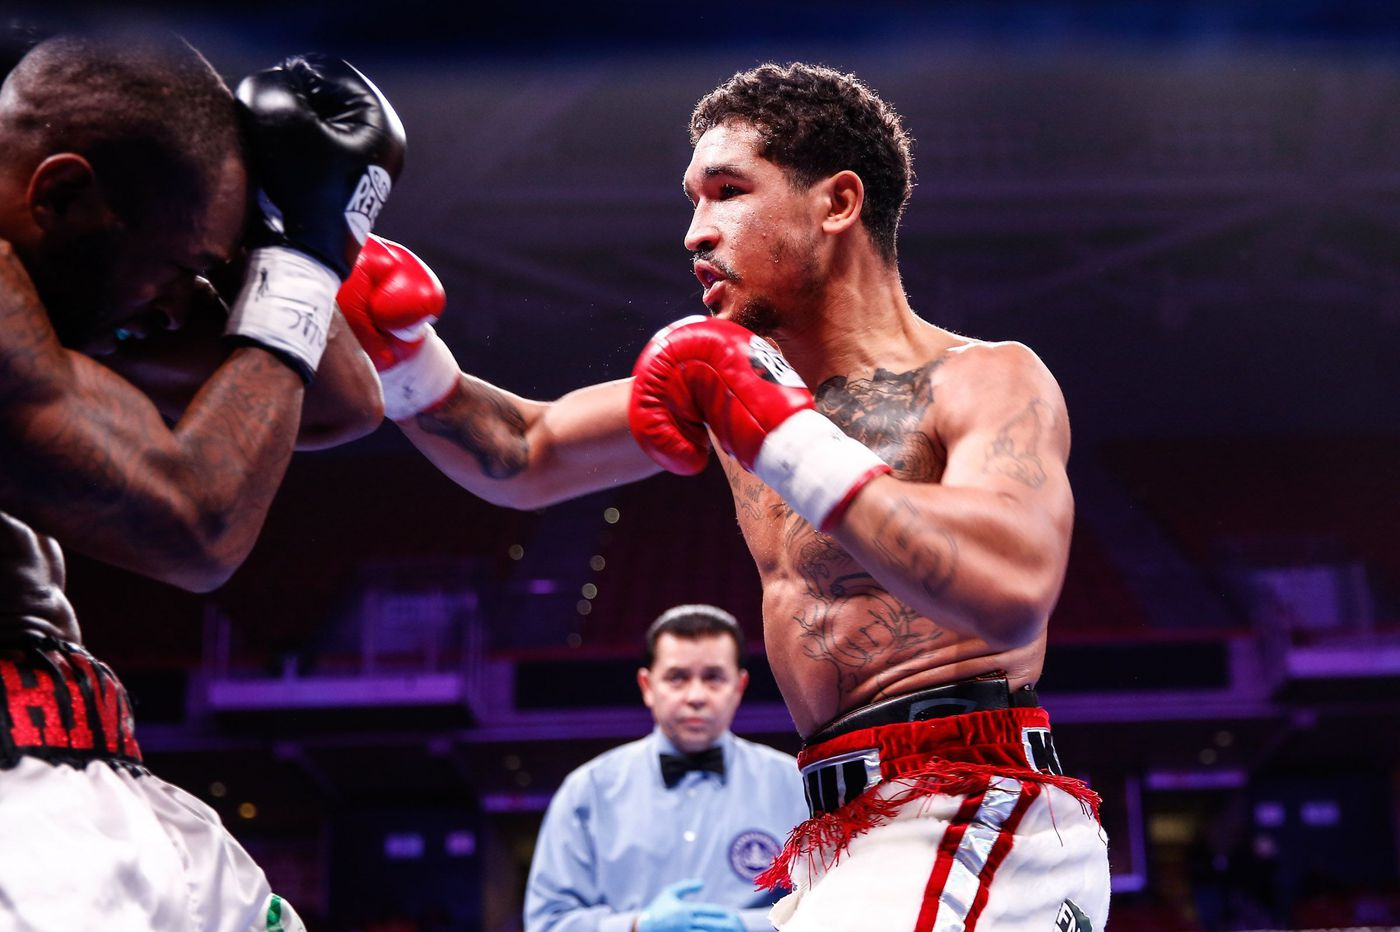 Philly boxing prospect Paul Kroll's time is now